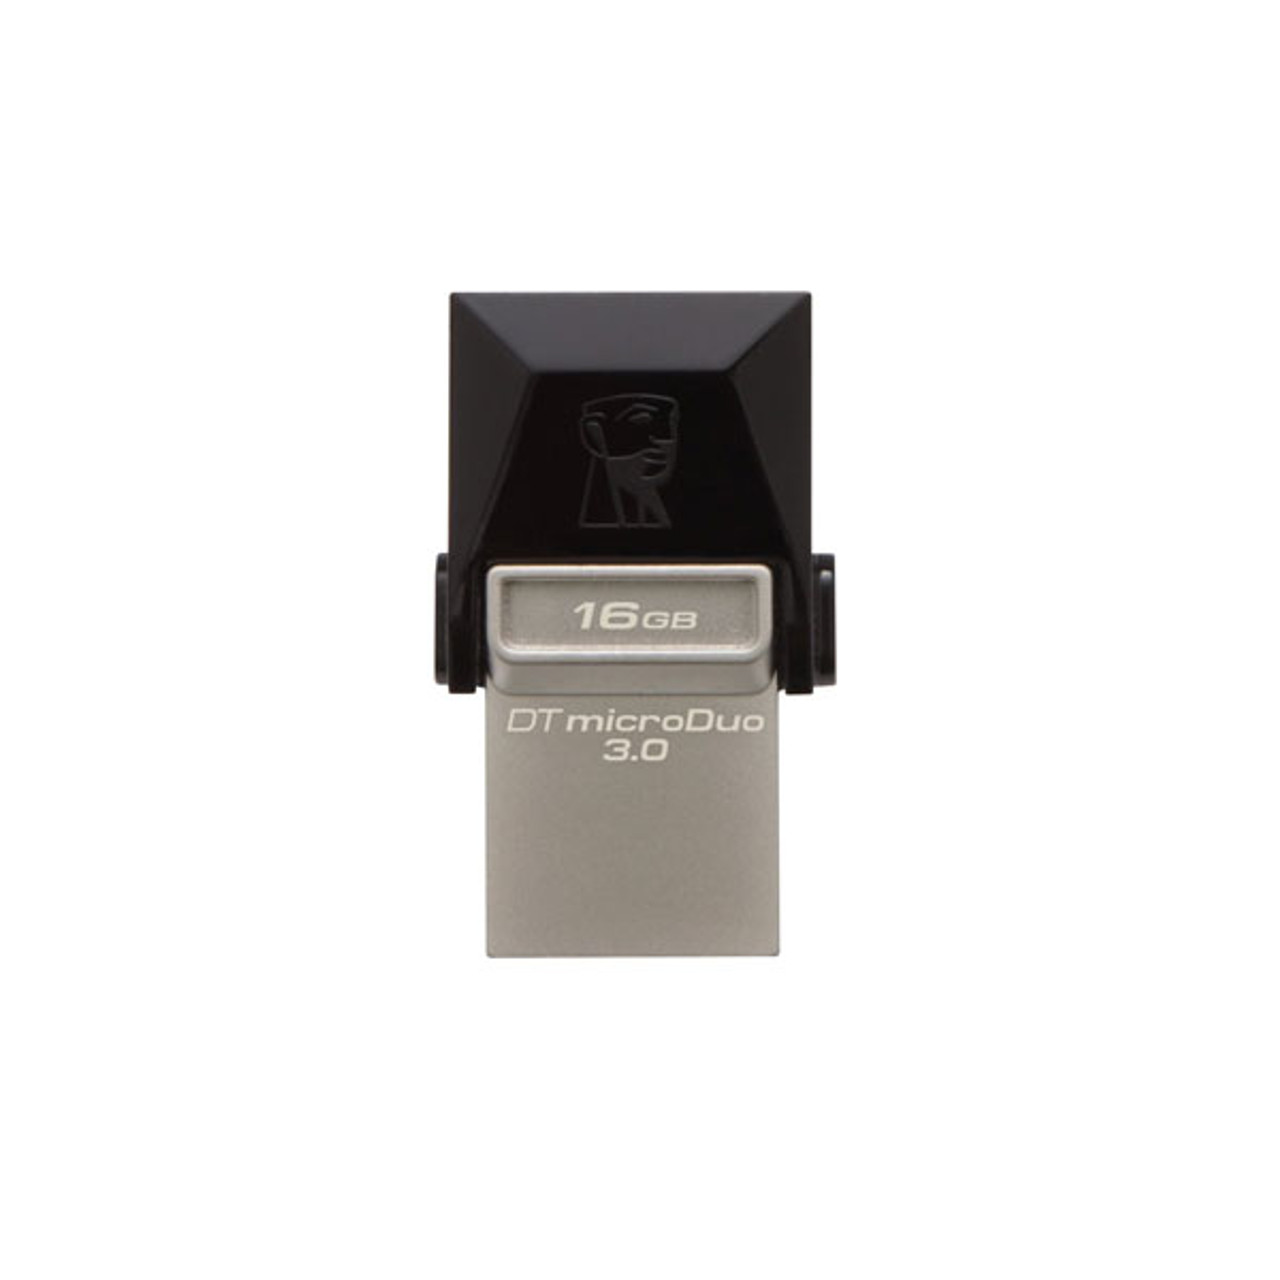 Image for Kingston DataTraveler microDuo 16GB USB 3.0 Flash Drive with micro USB OTG CX Computer Superstore